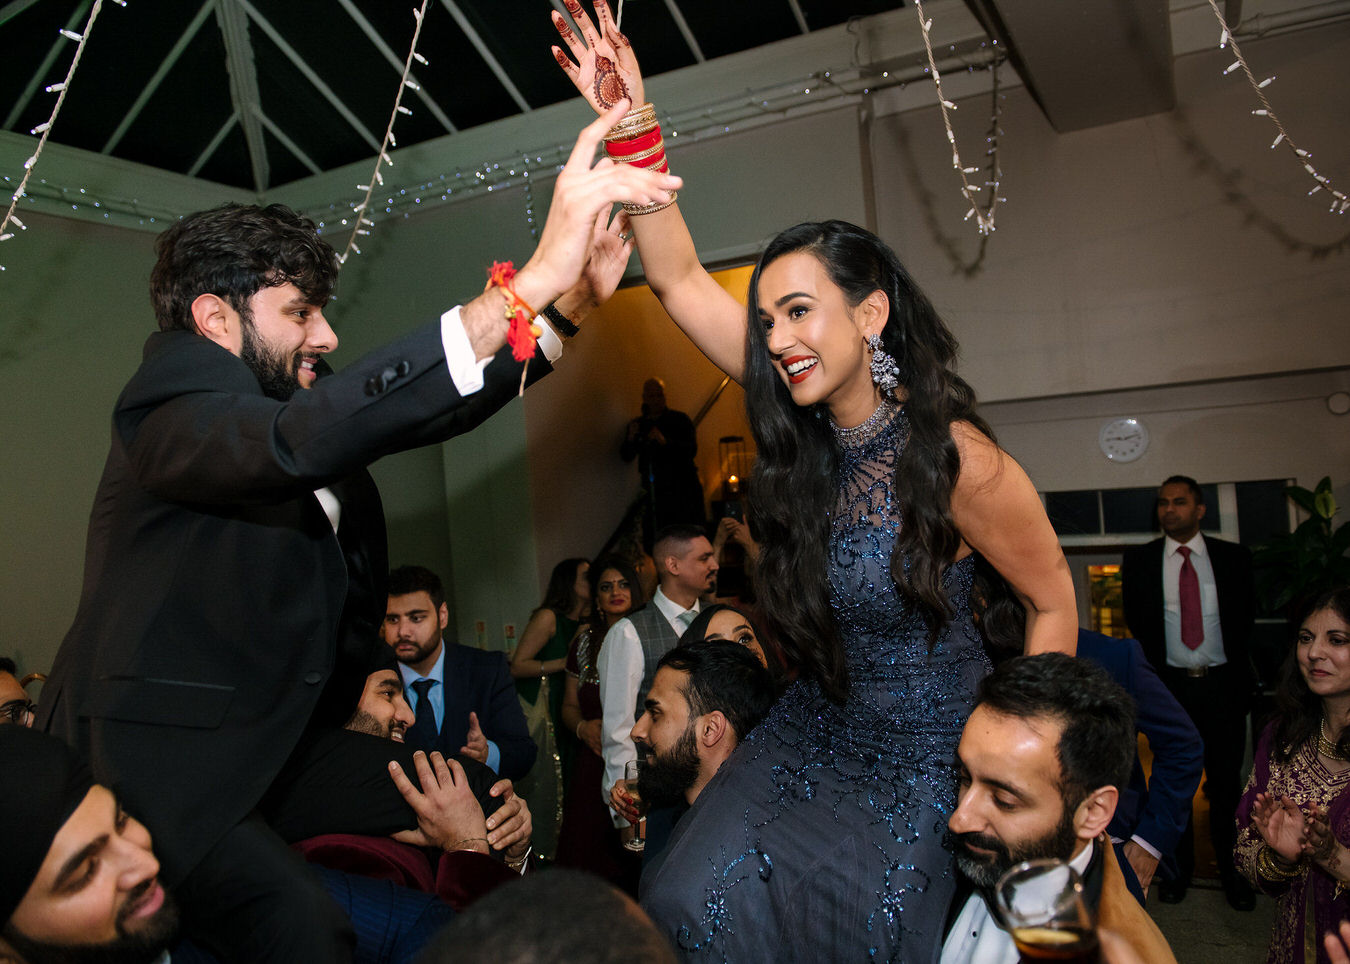 Sikh Asian bride and groom with hands in the air, singing and dancing on the guests shoulders.